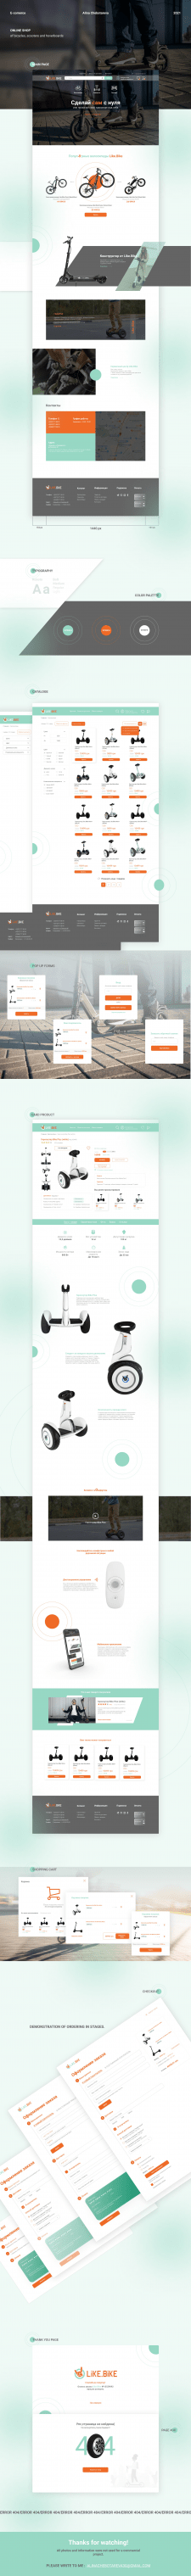 Online store of bicycles, scooters and hoverboards